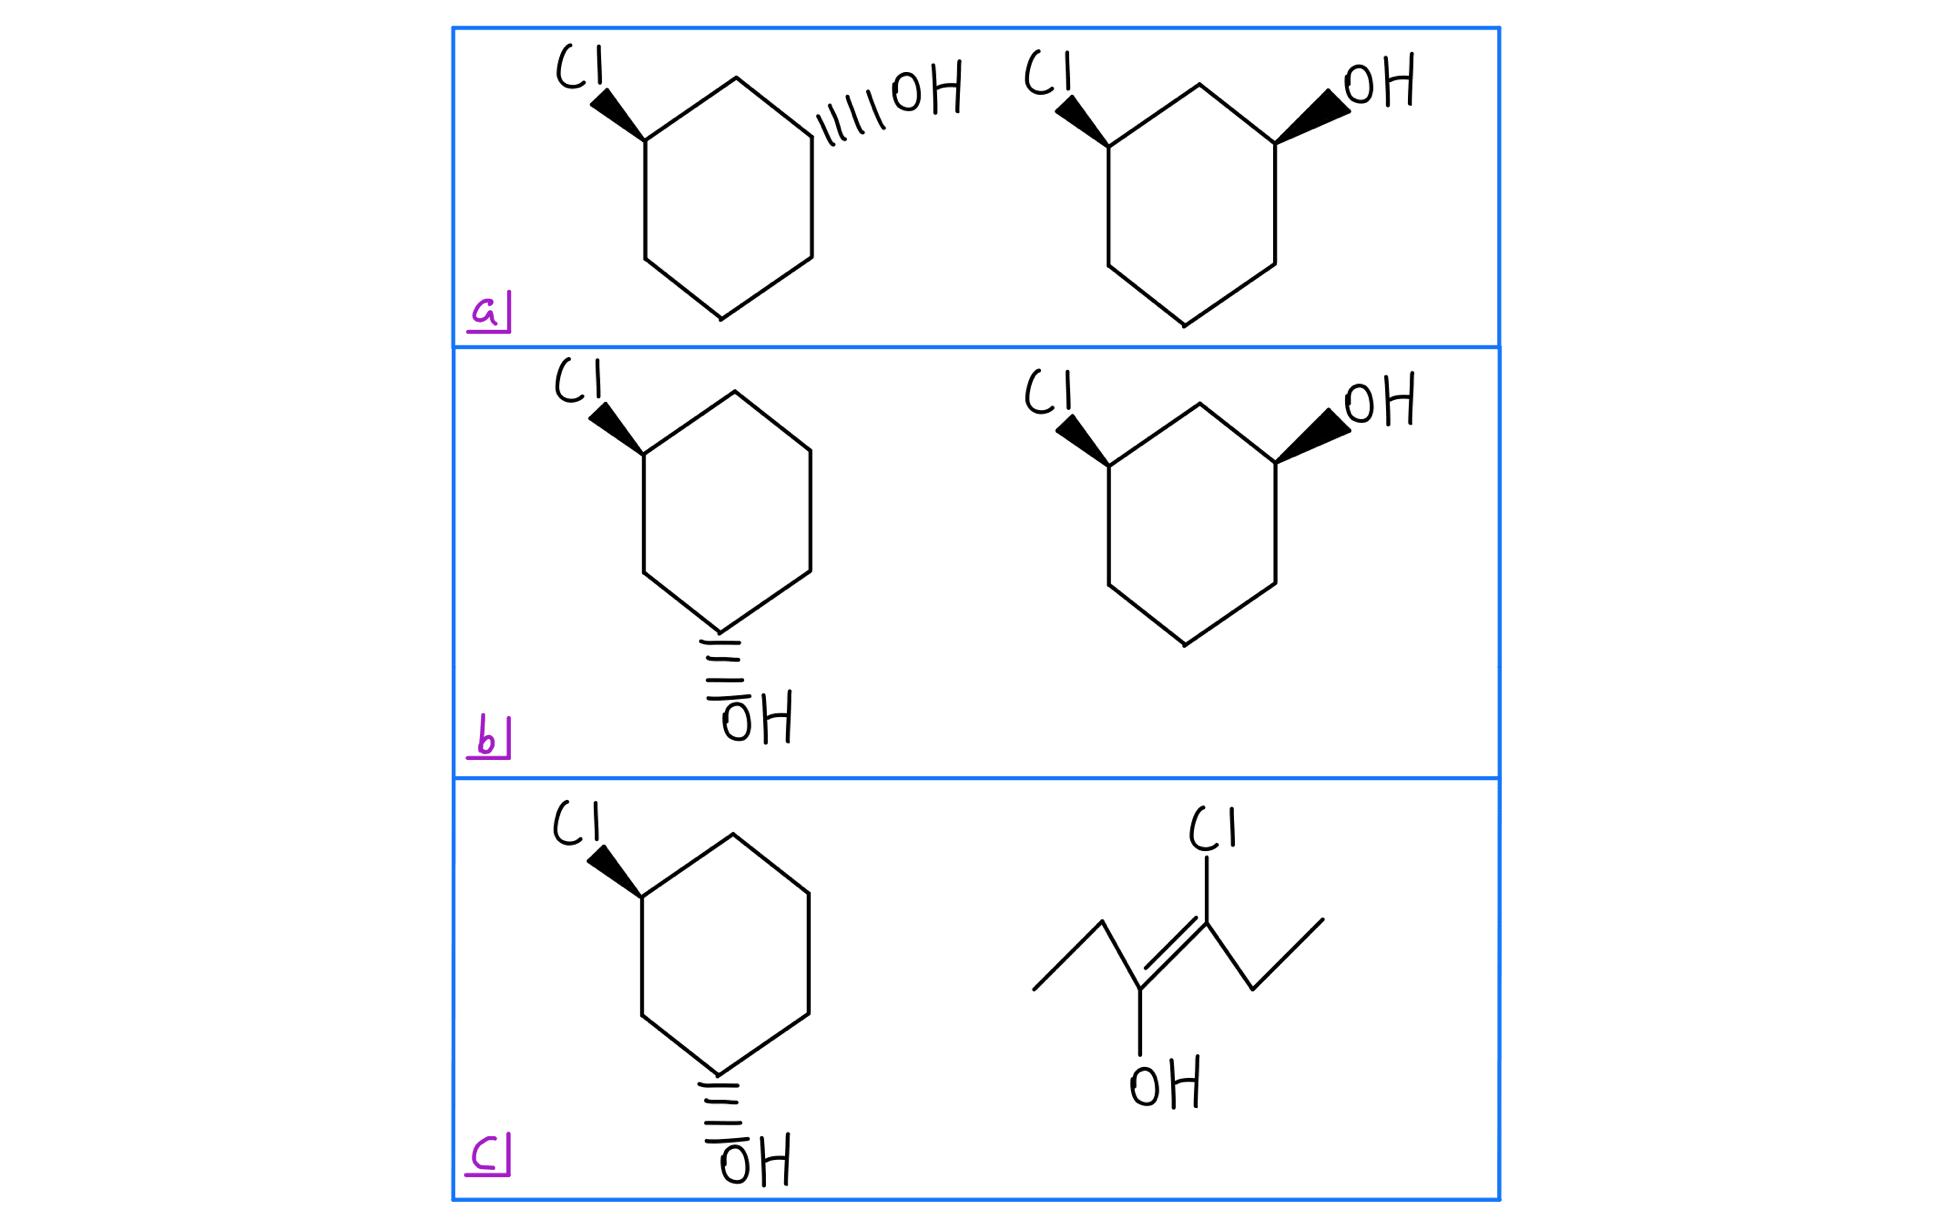 Stereoisomers vs constitutional isomers